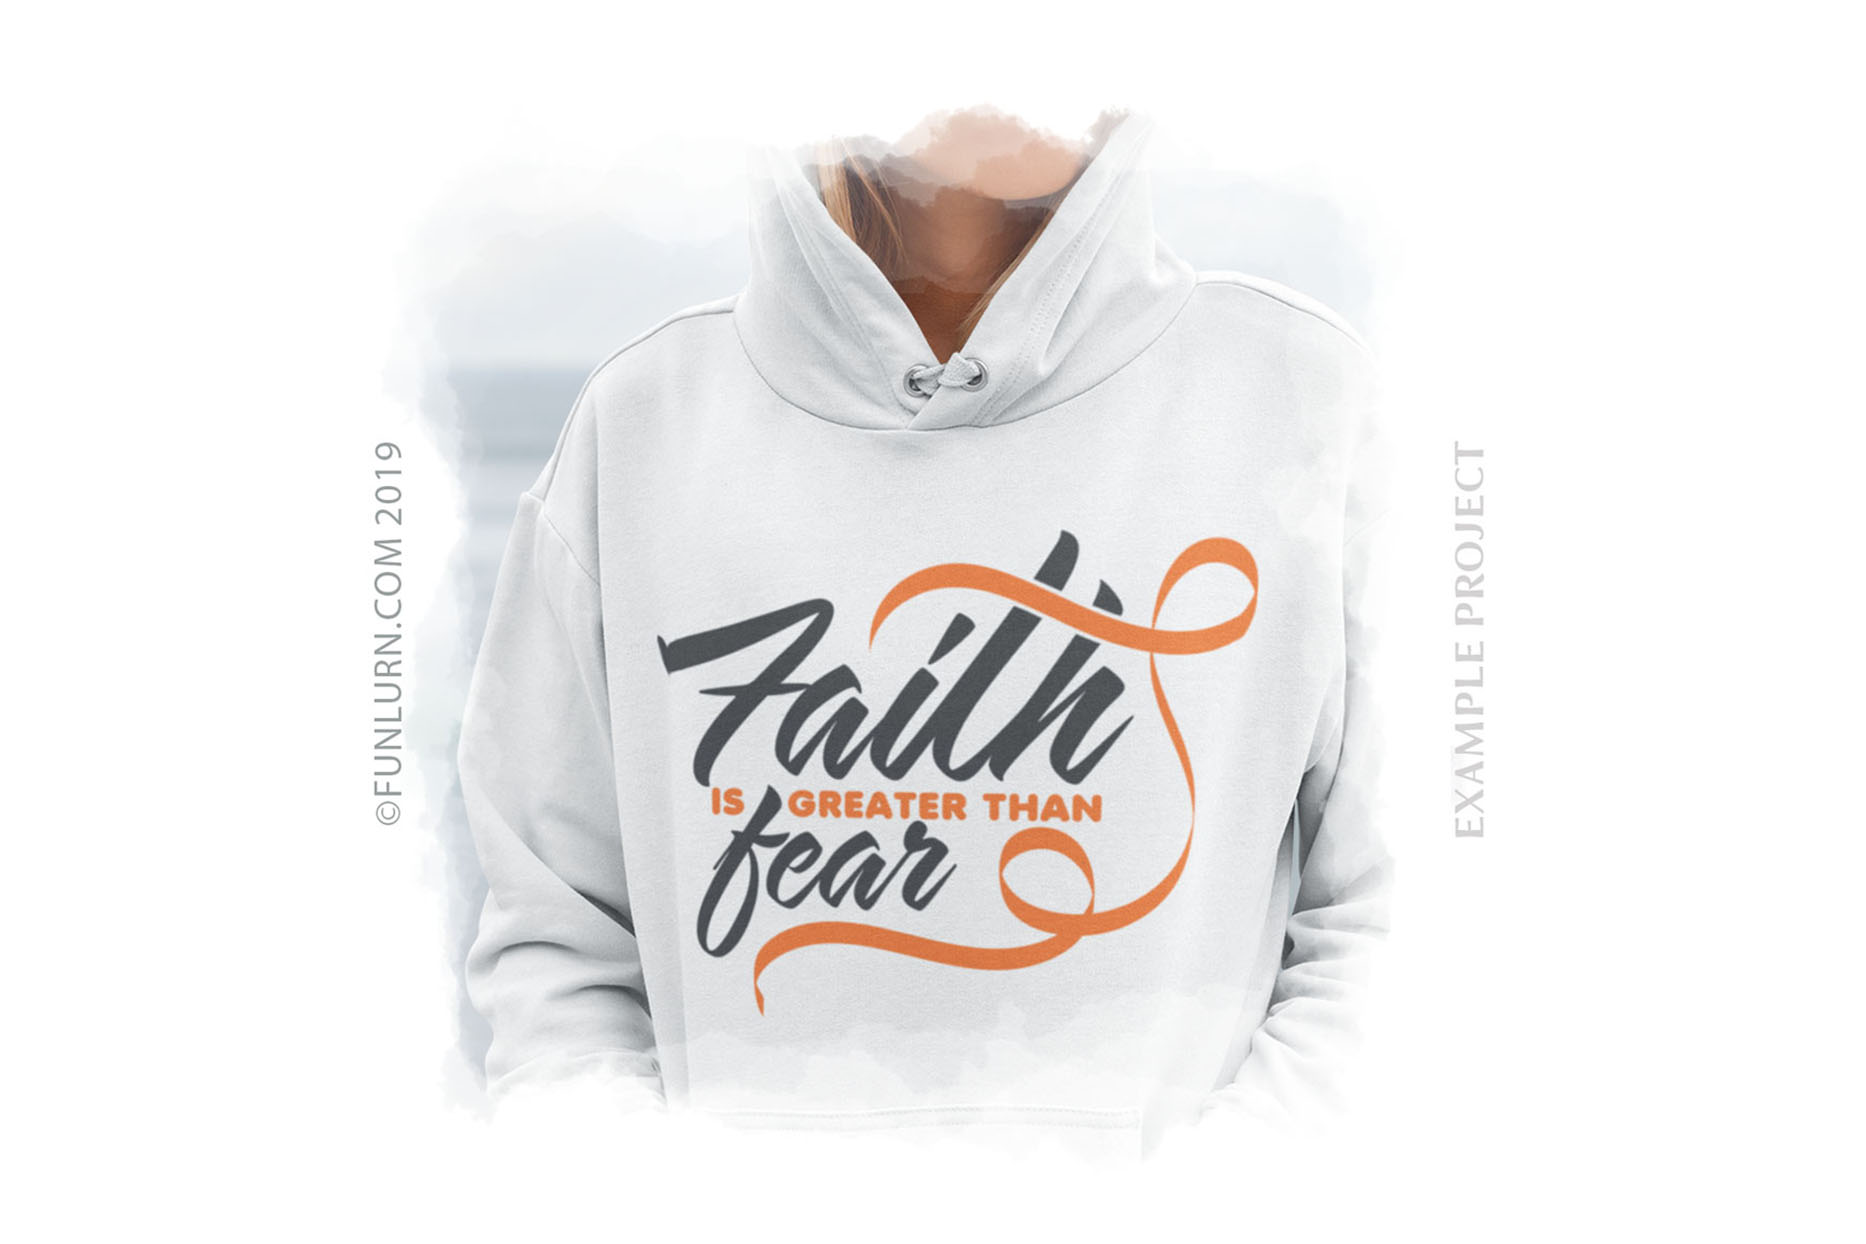 Faith is Greater Than Fear Orange Ribbon SVG Cut File example image 3